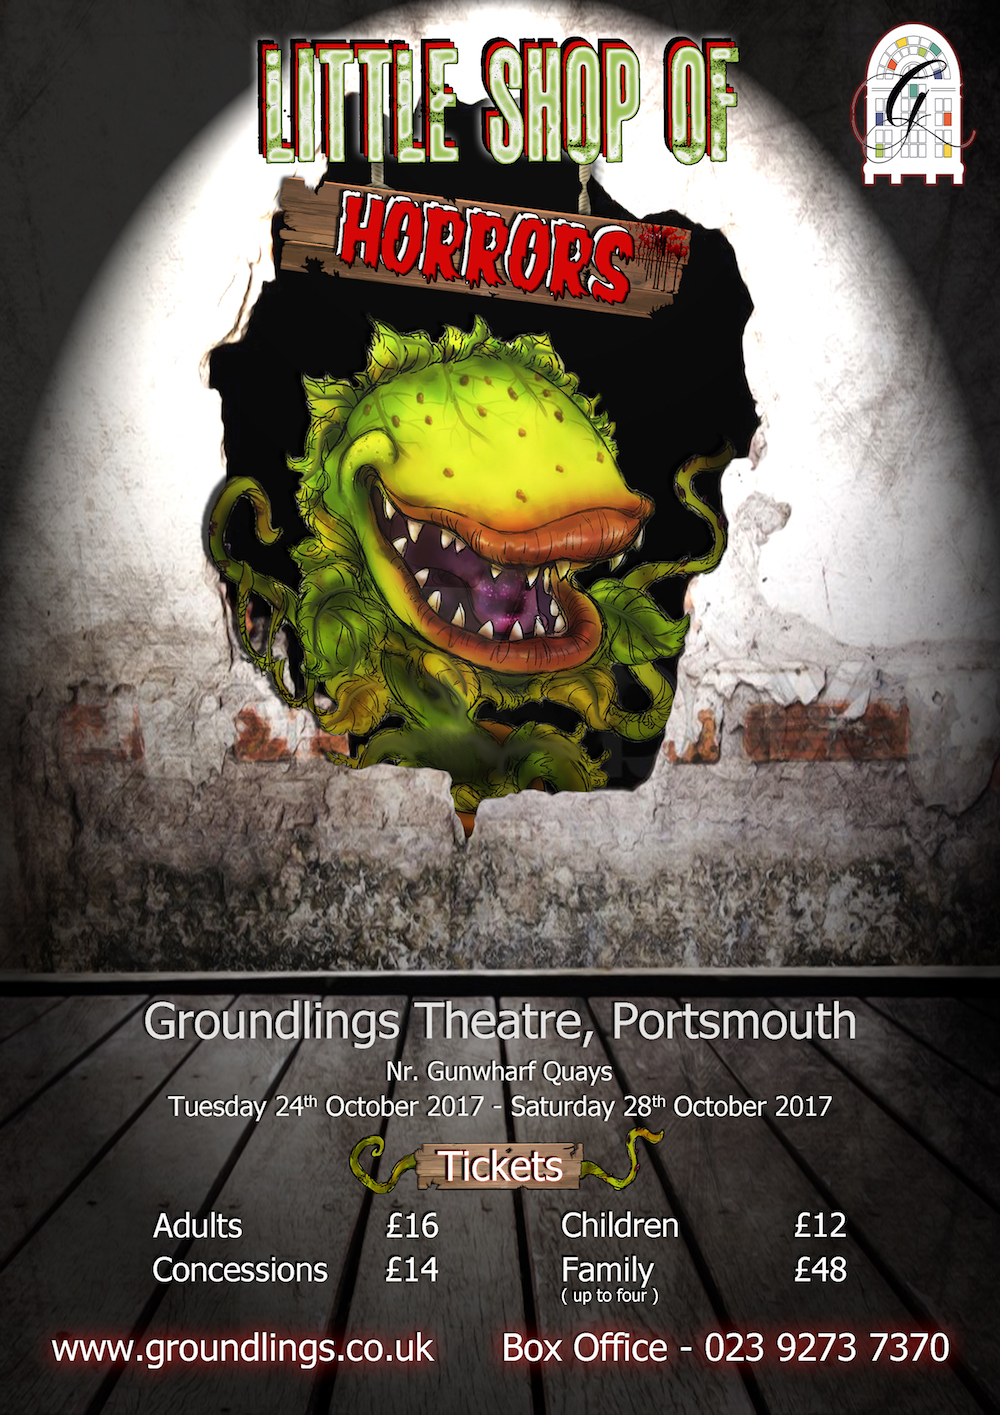 Little Shop of Horrors A4.jpg